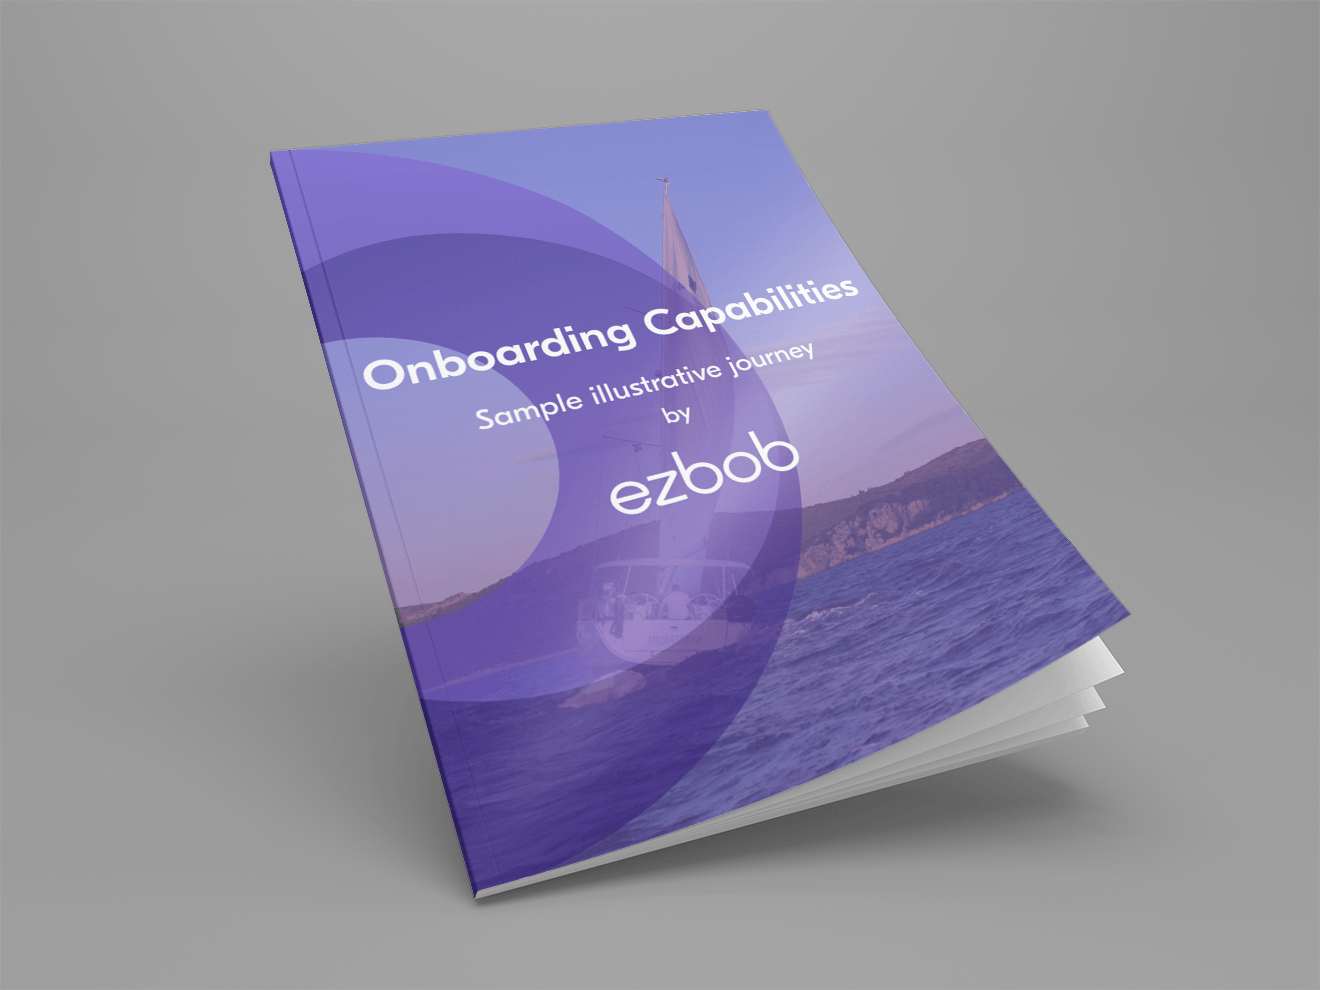 Onboarding Capabilities by ezbob